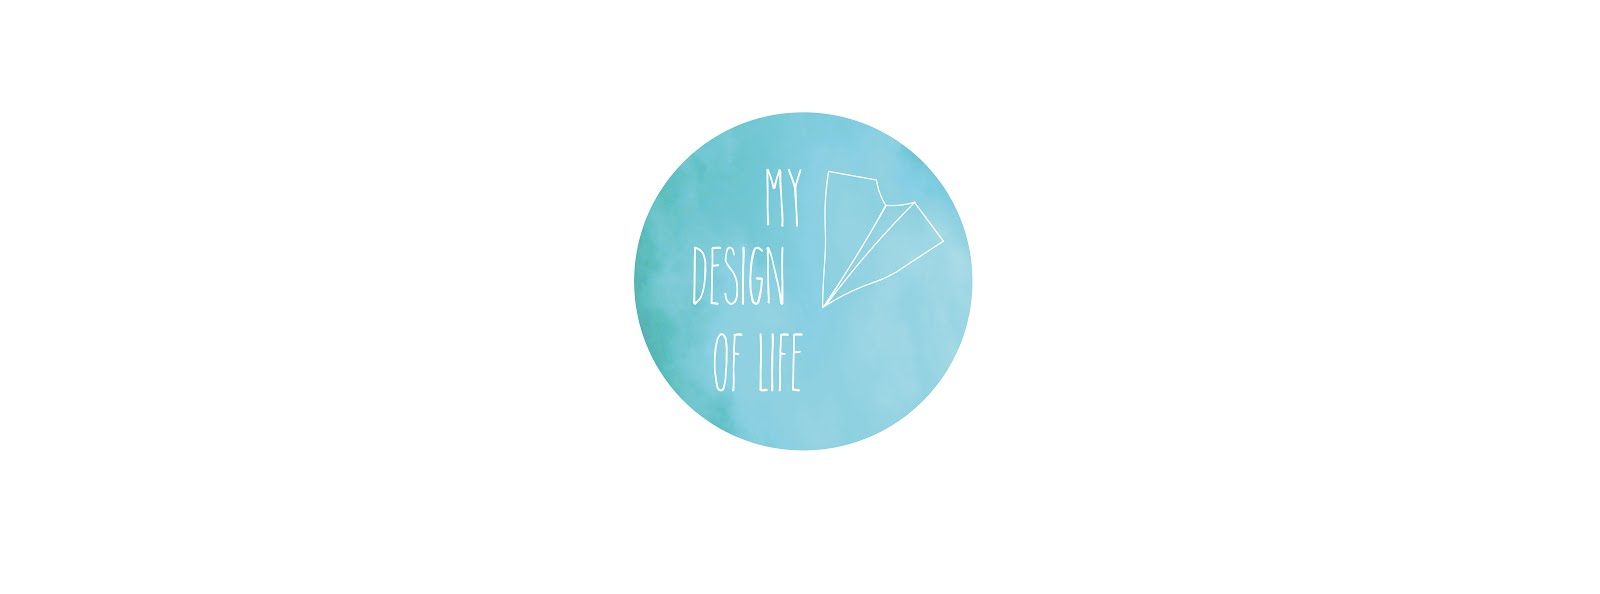 MY DESIGN OF LIFE